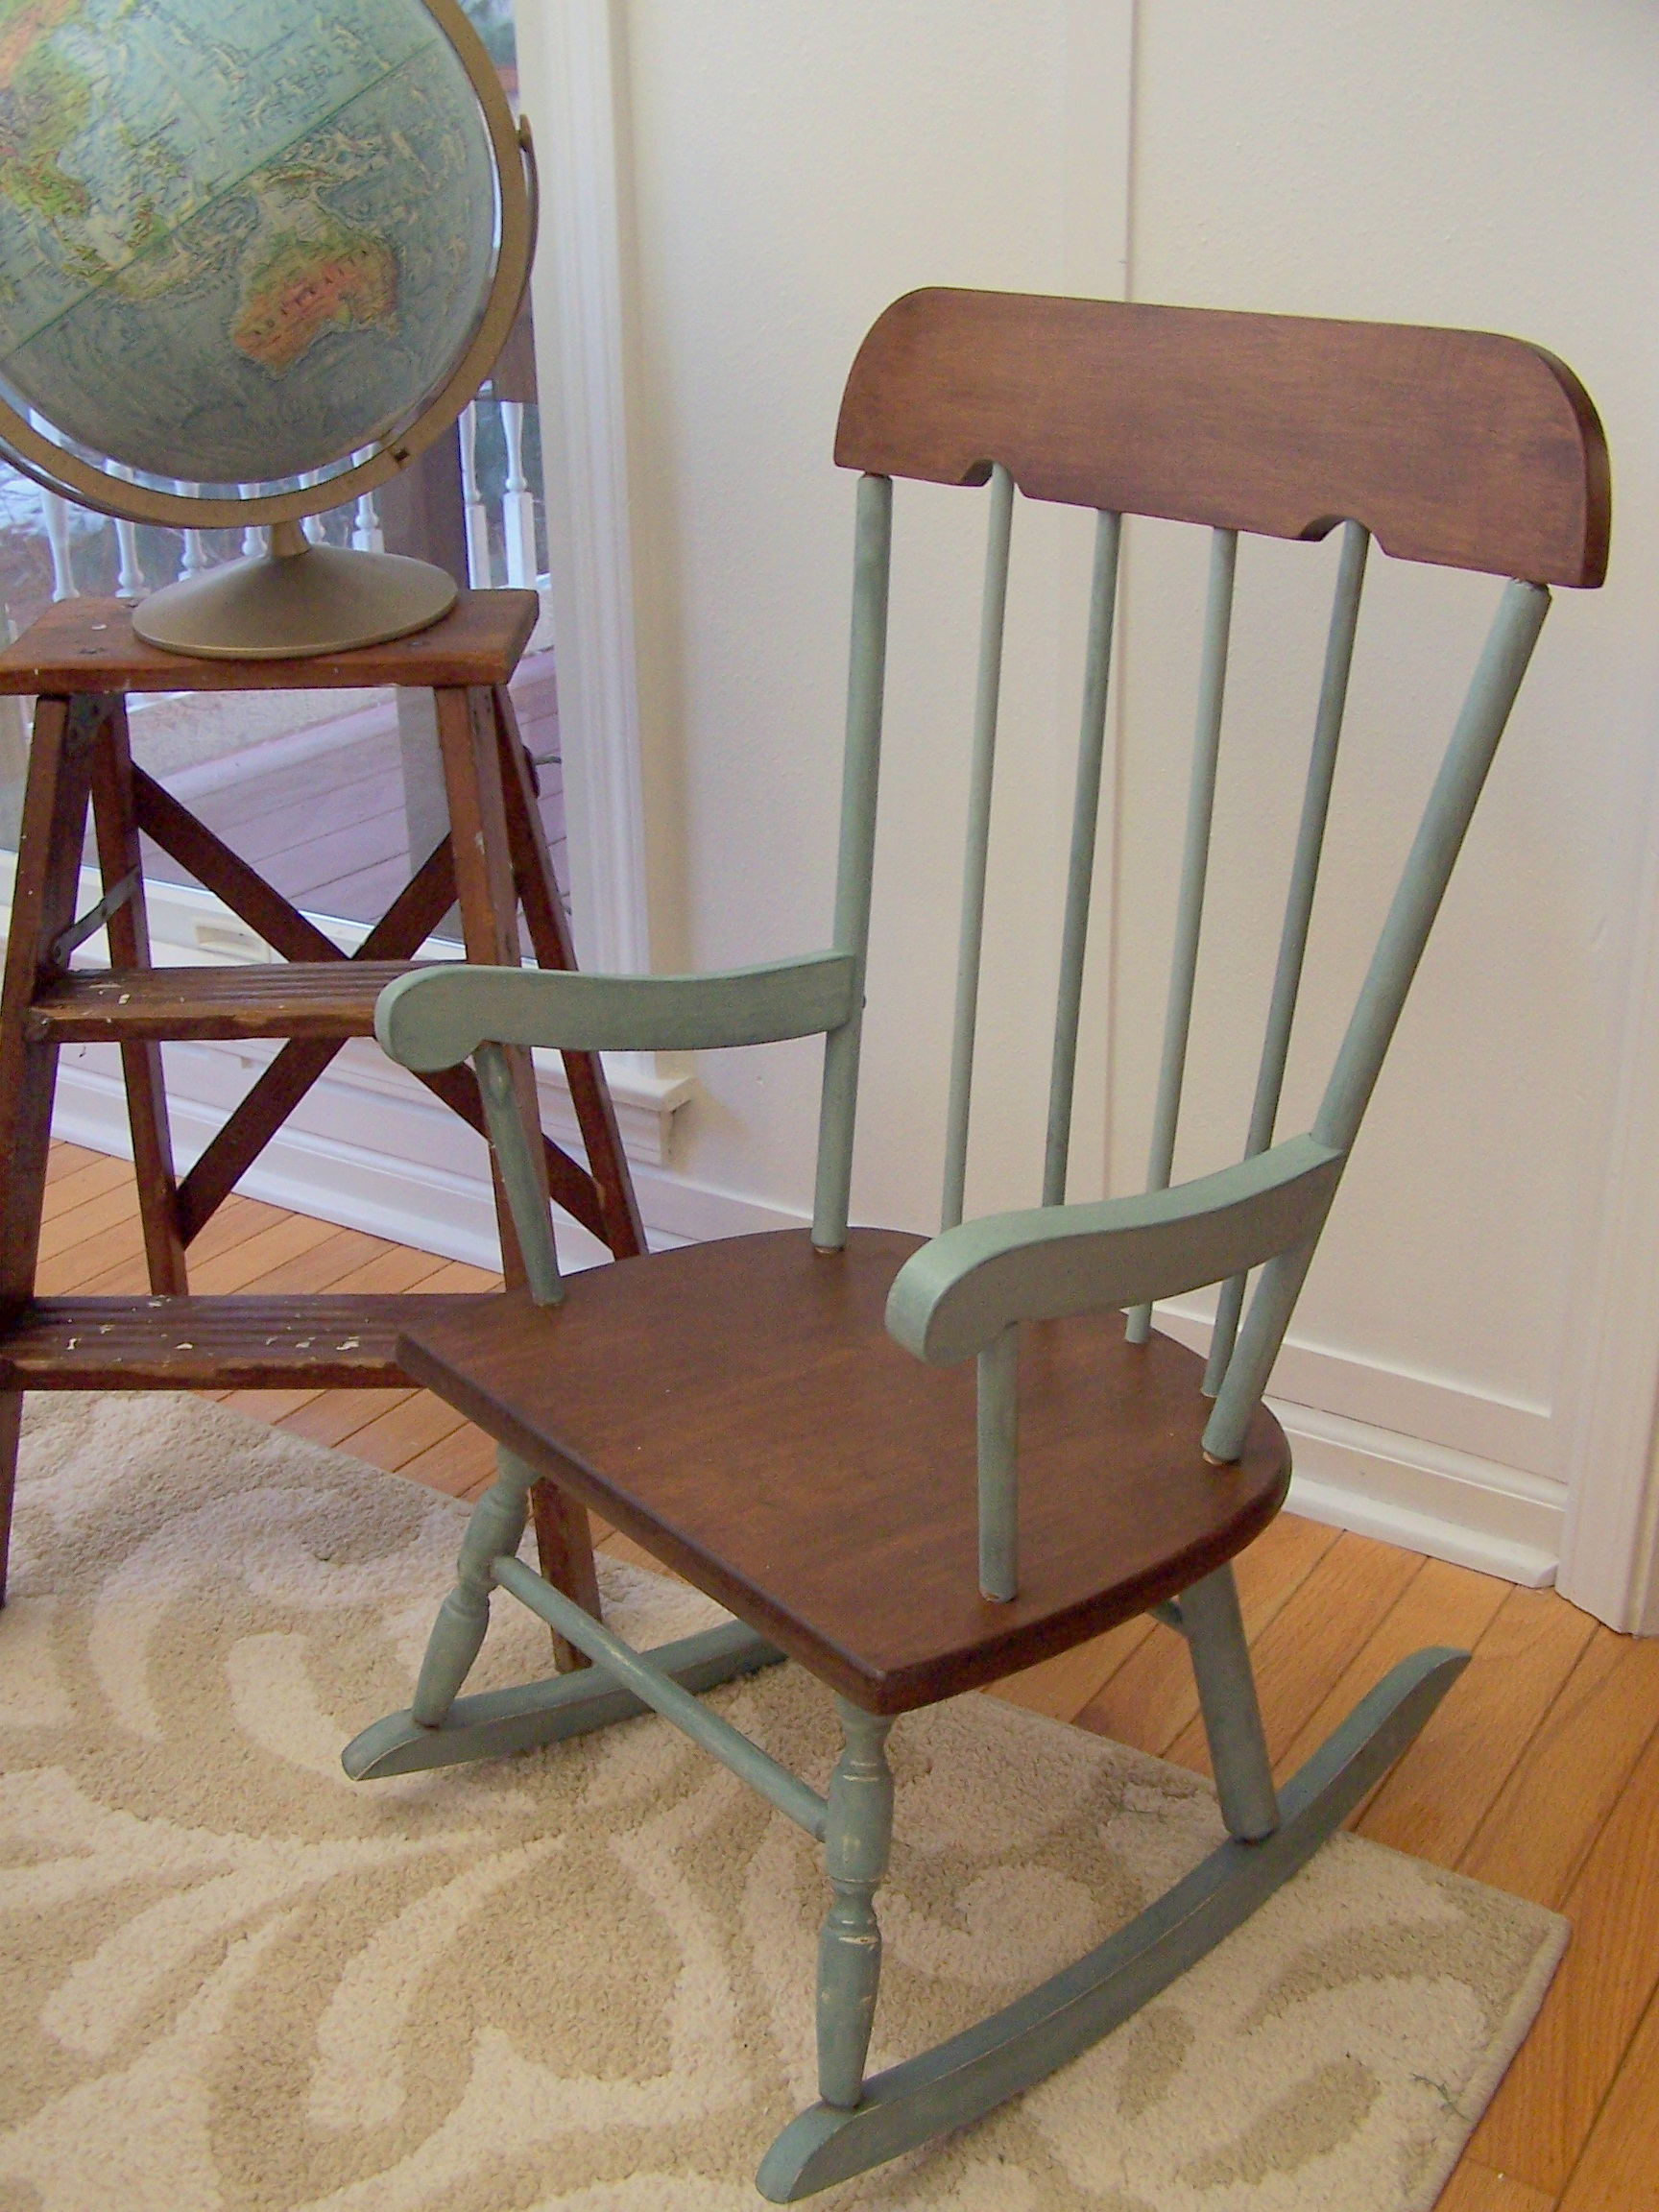 how to make a rocking chair not rock modern vanity vintage hardwood childs urban farmhouse